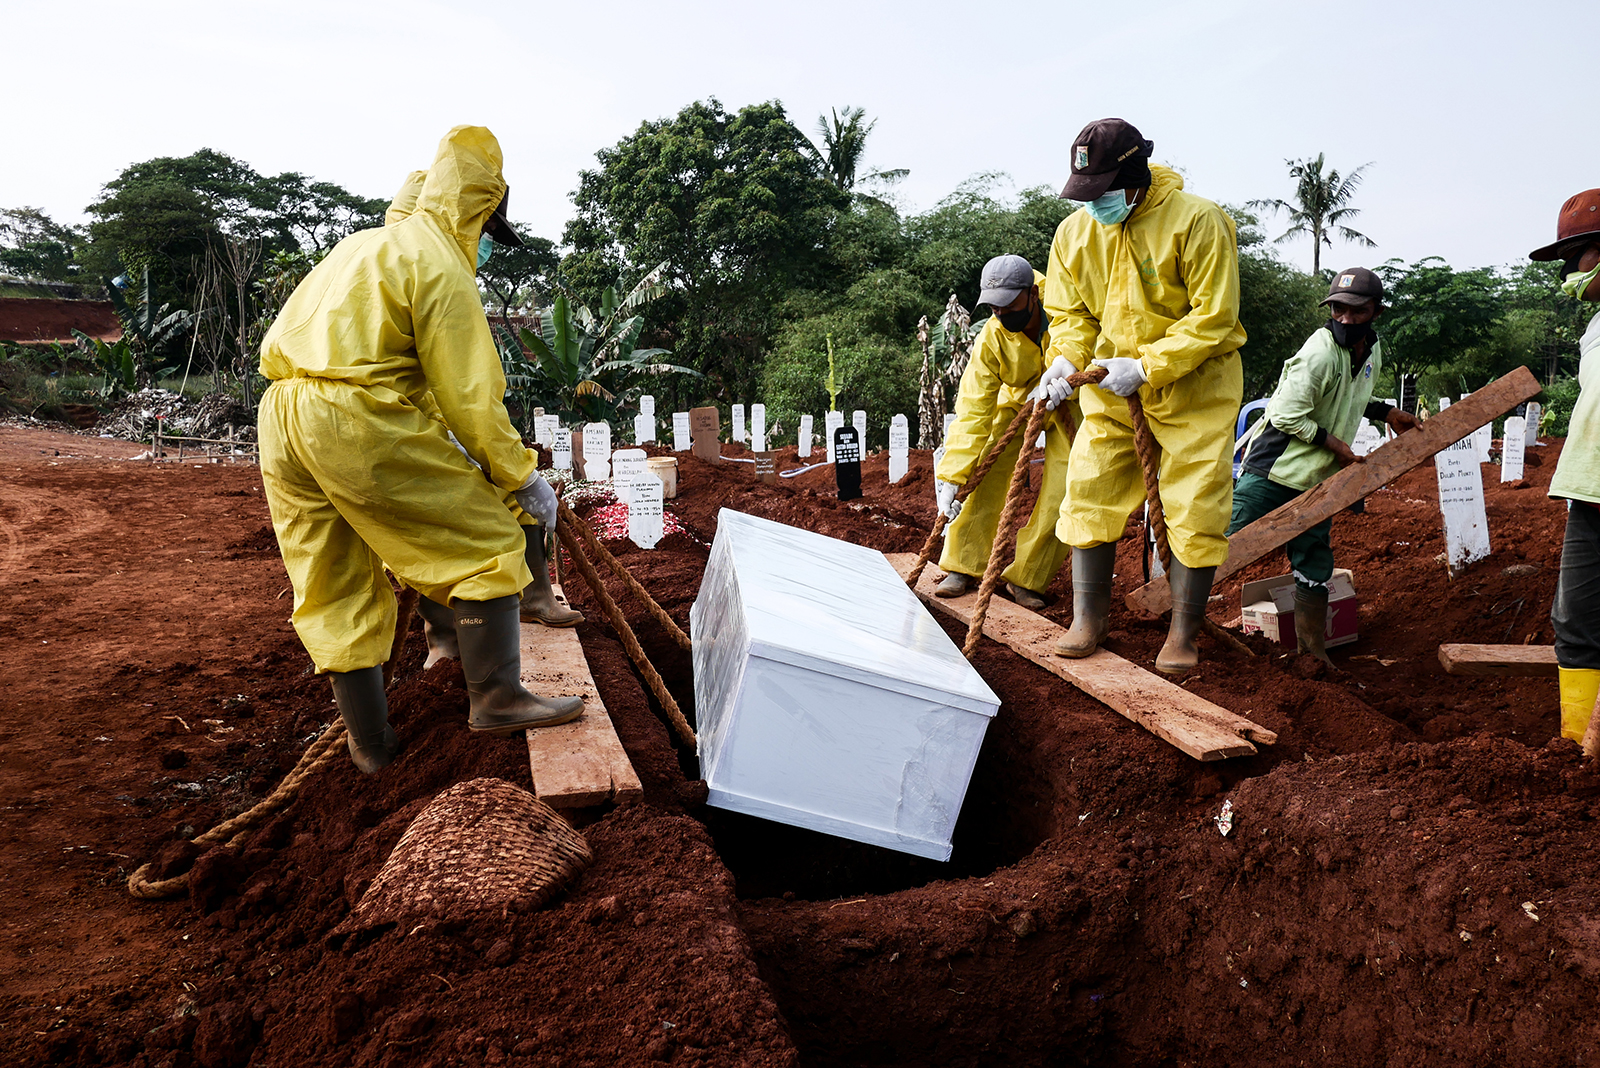 Funeral workers wearing protective suits bury a Covid-19 victim at Pondok Ranggon cemetery in Jakarta, Indonesia, on September 9.